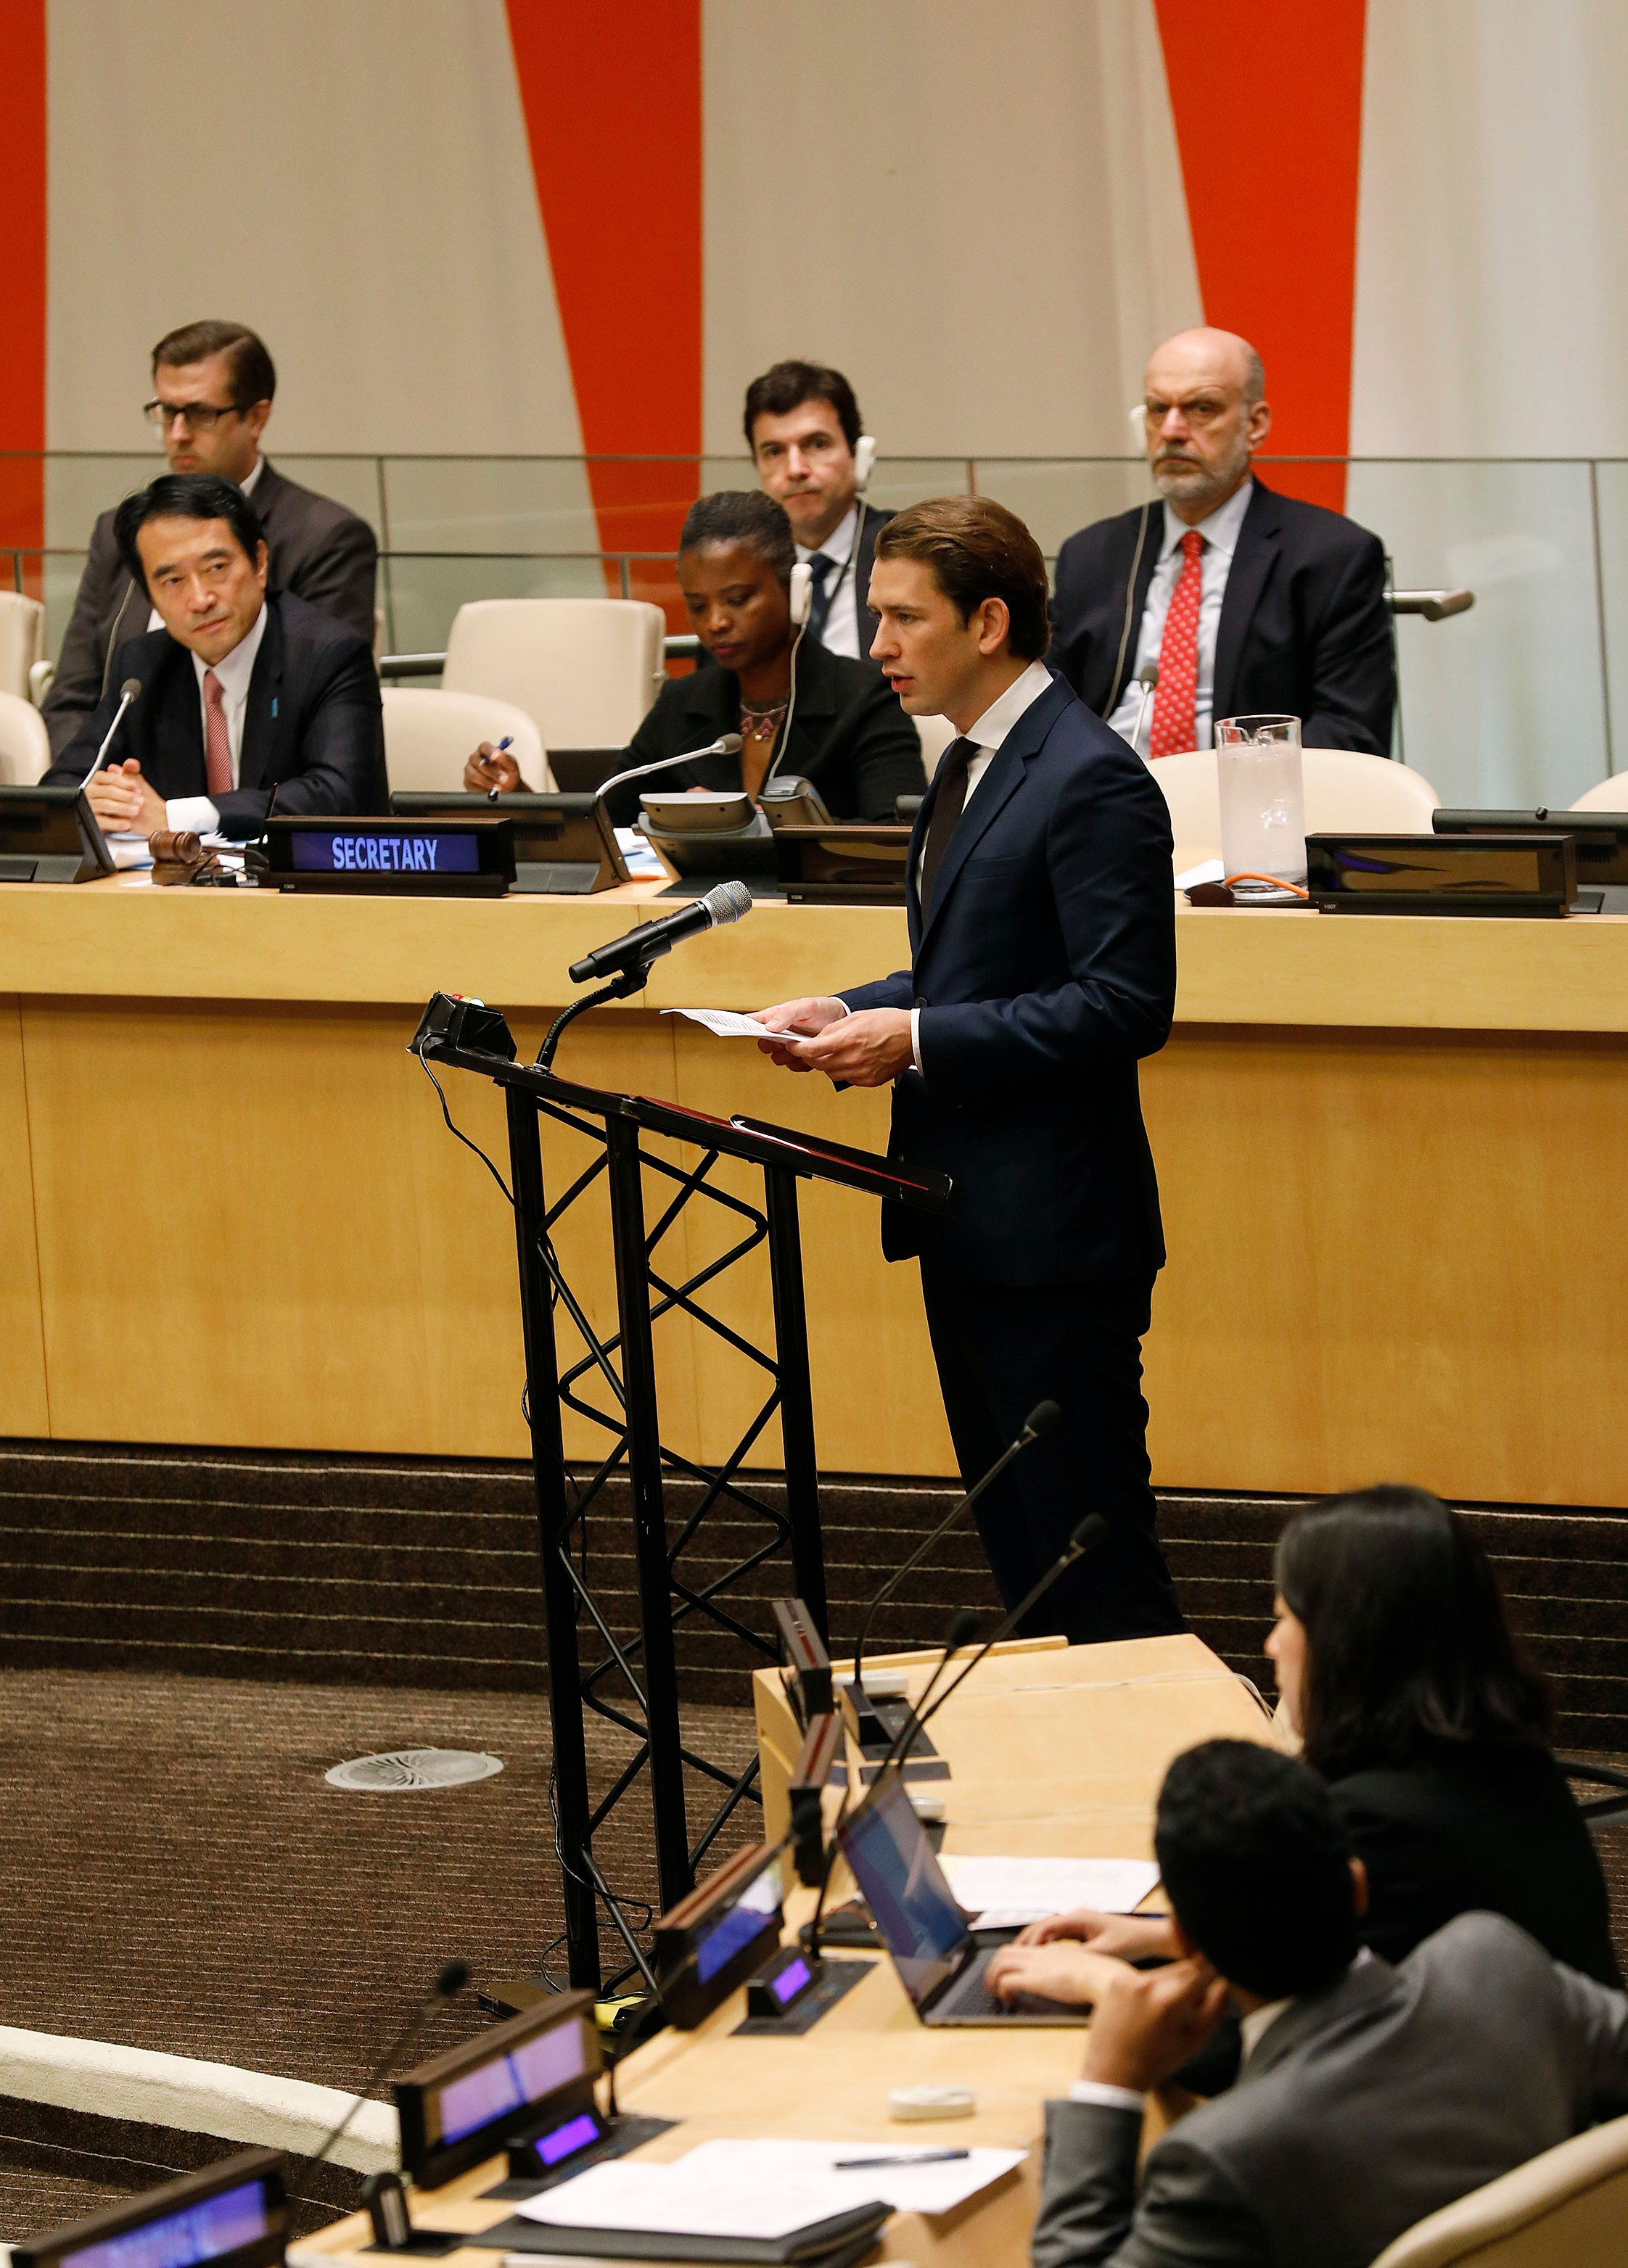 Austrian Chancellor Sebastian Kurz addresses the UN General Assembly on September 26, 2018, the International Day of the Total Elimination of Nuclear Weapons (c) BKA/Dragan Tatic